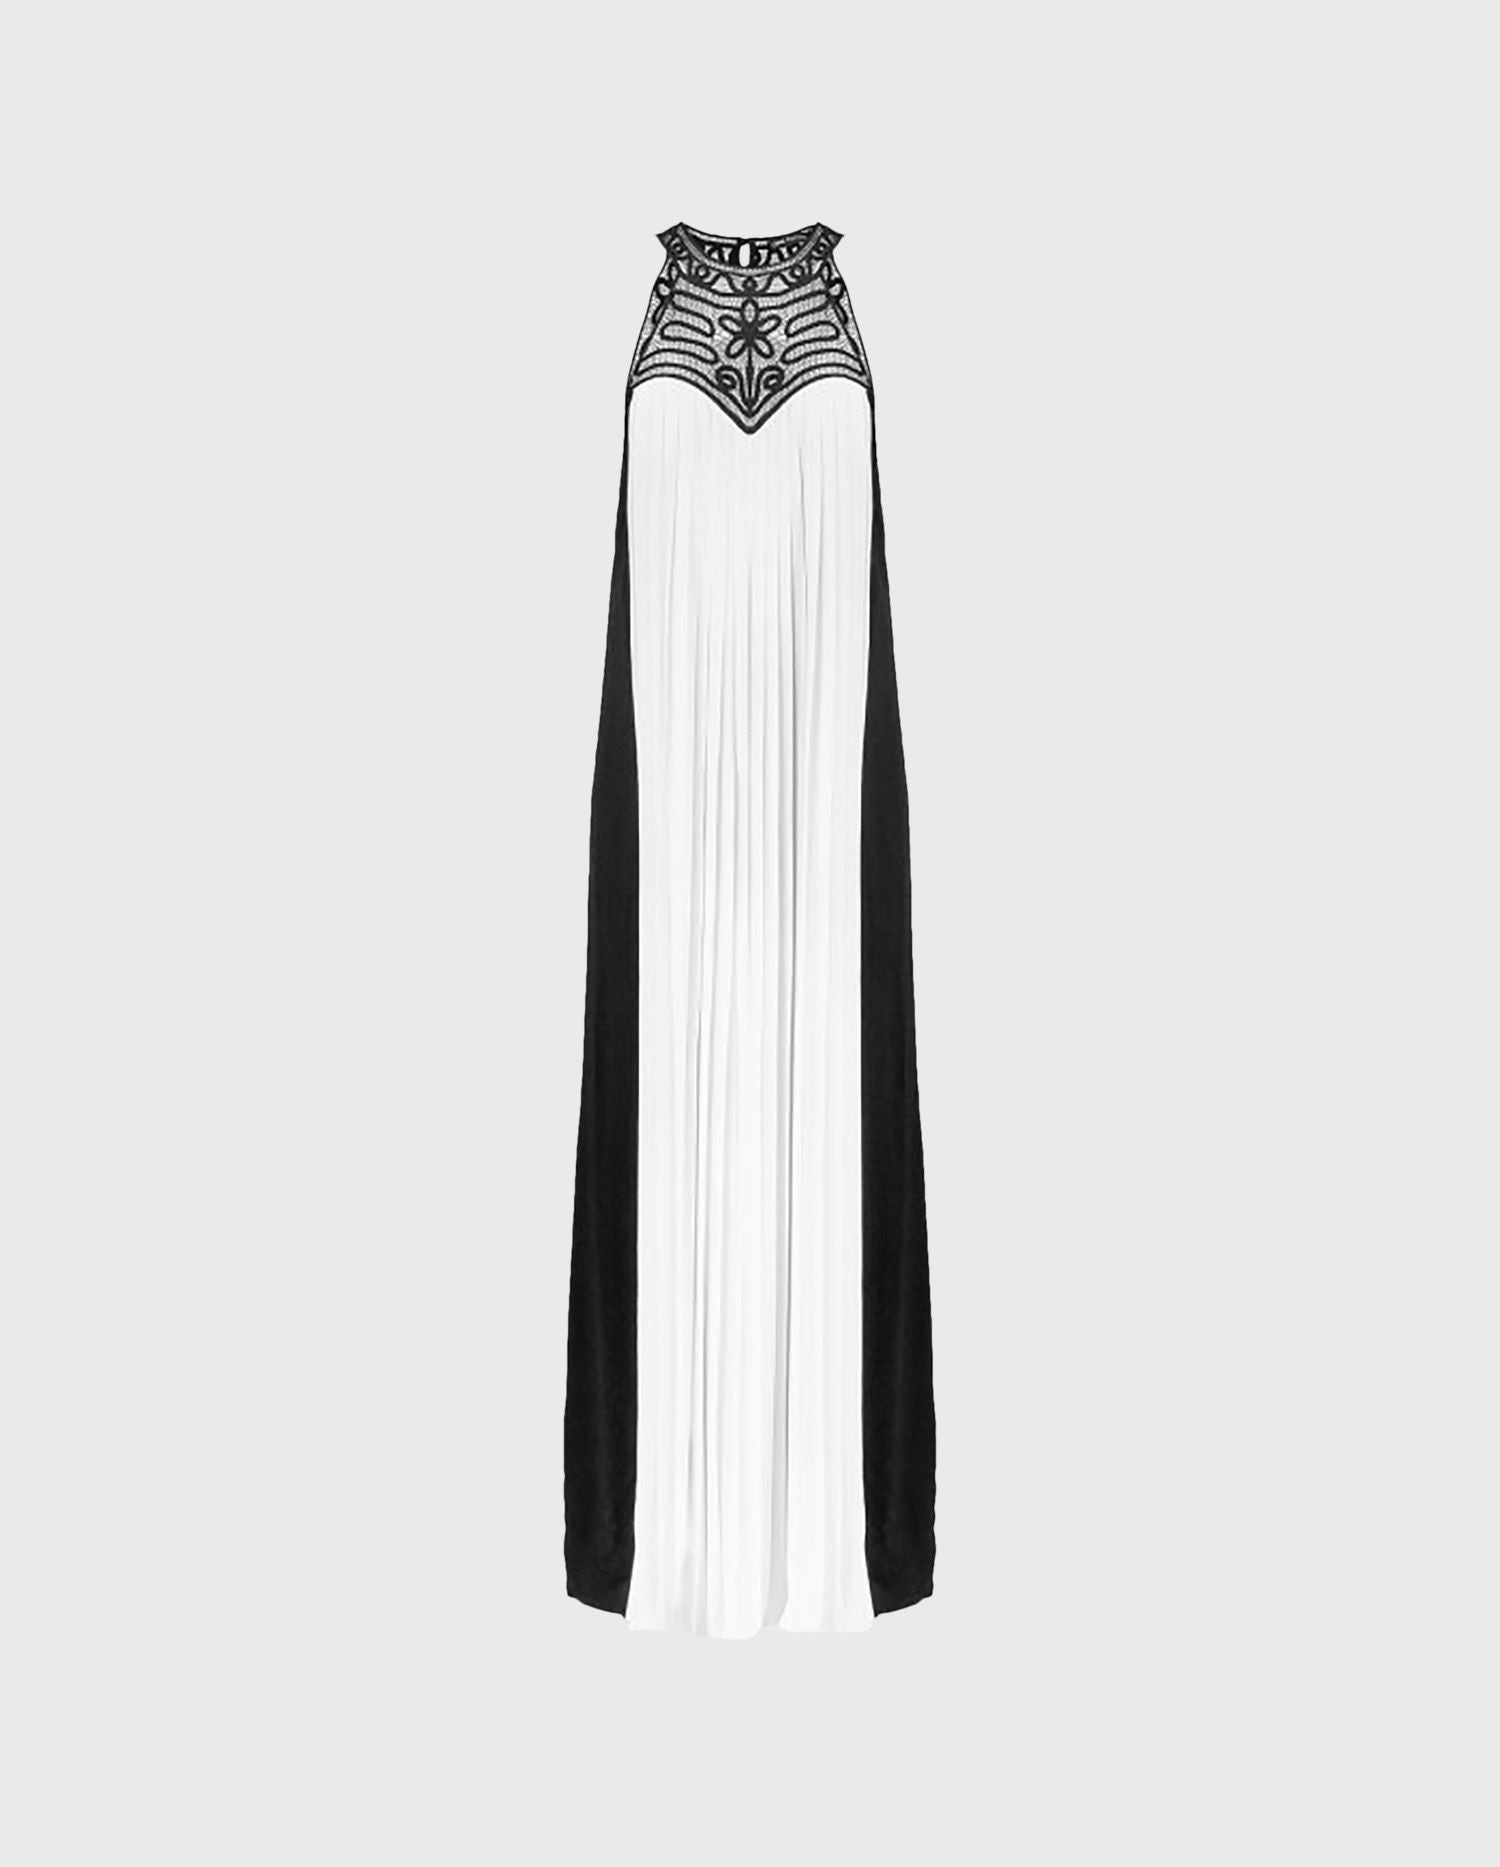 The VOLUPTA white and black maxi dress is the perfect look for making an entrance for your next event.